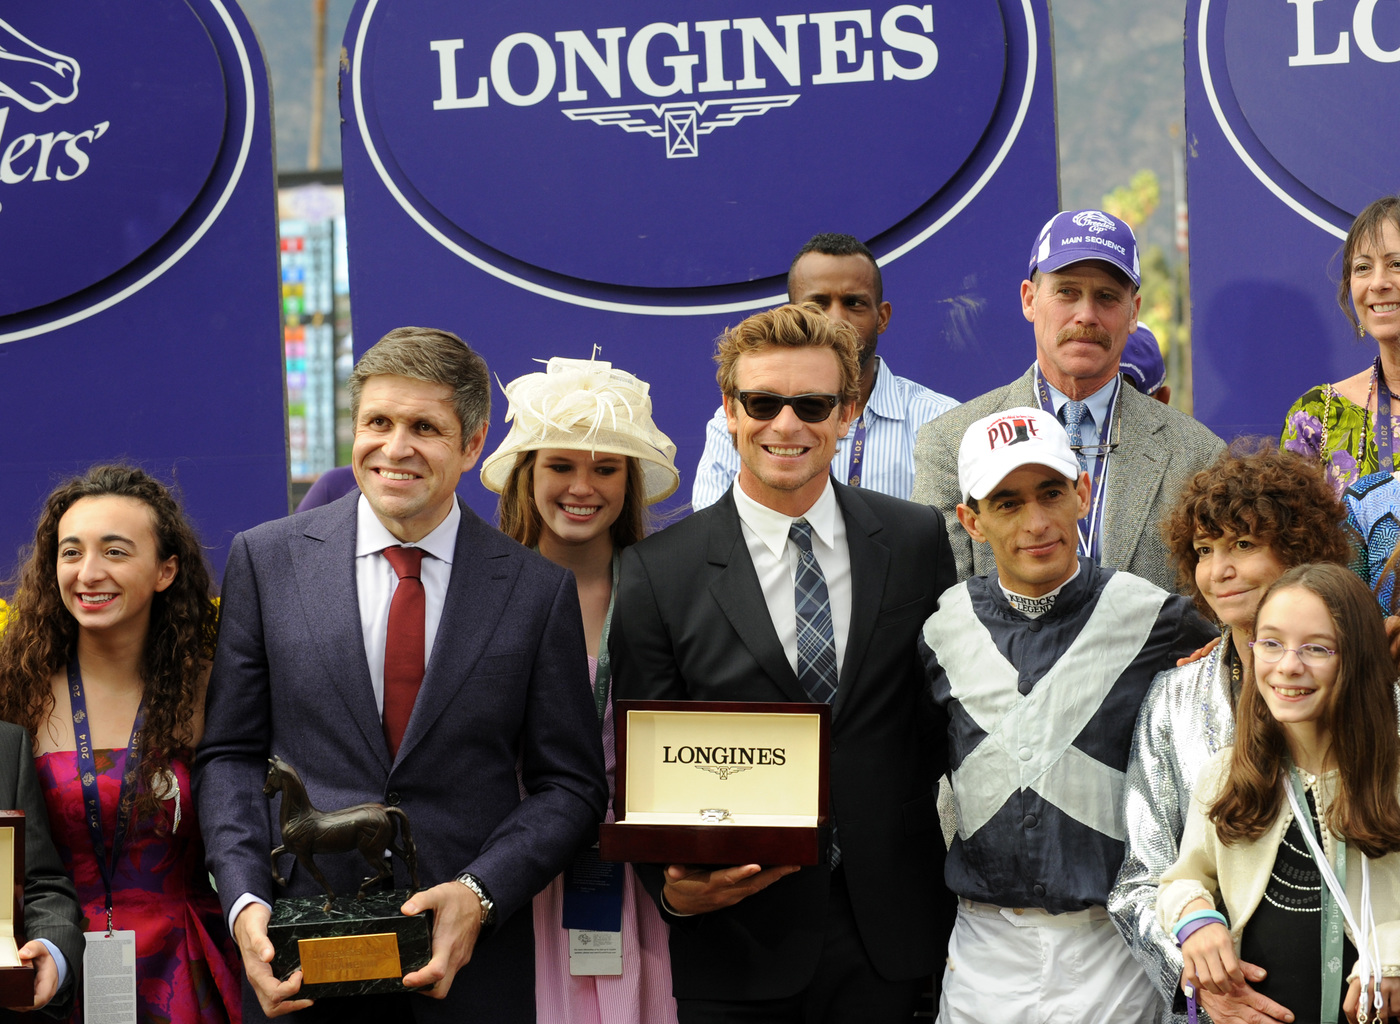 Longines Flat Racing Event: Longines Times the Breeders' Cup World Championships 5